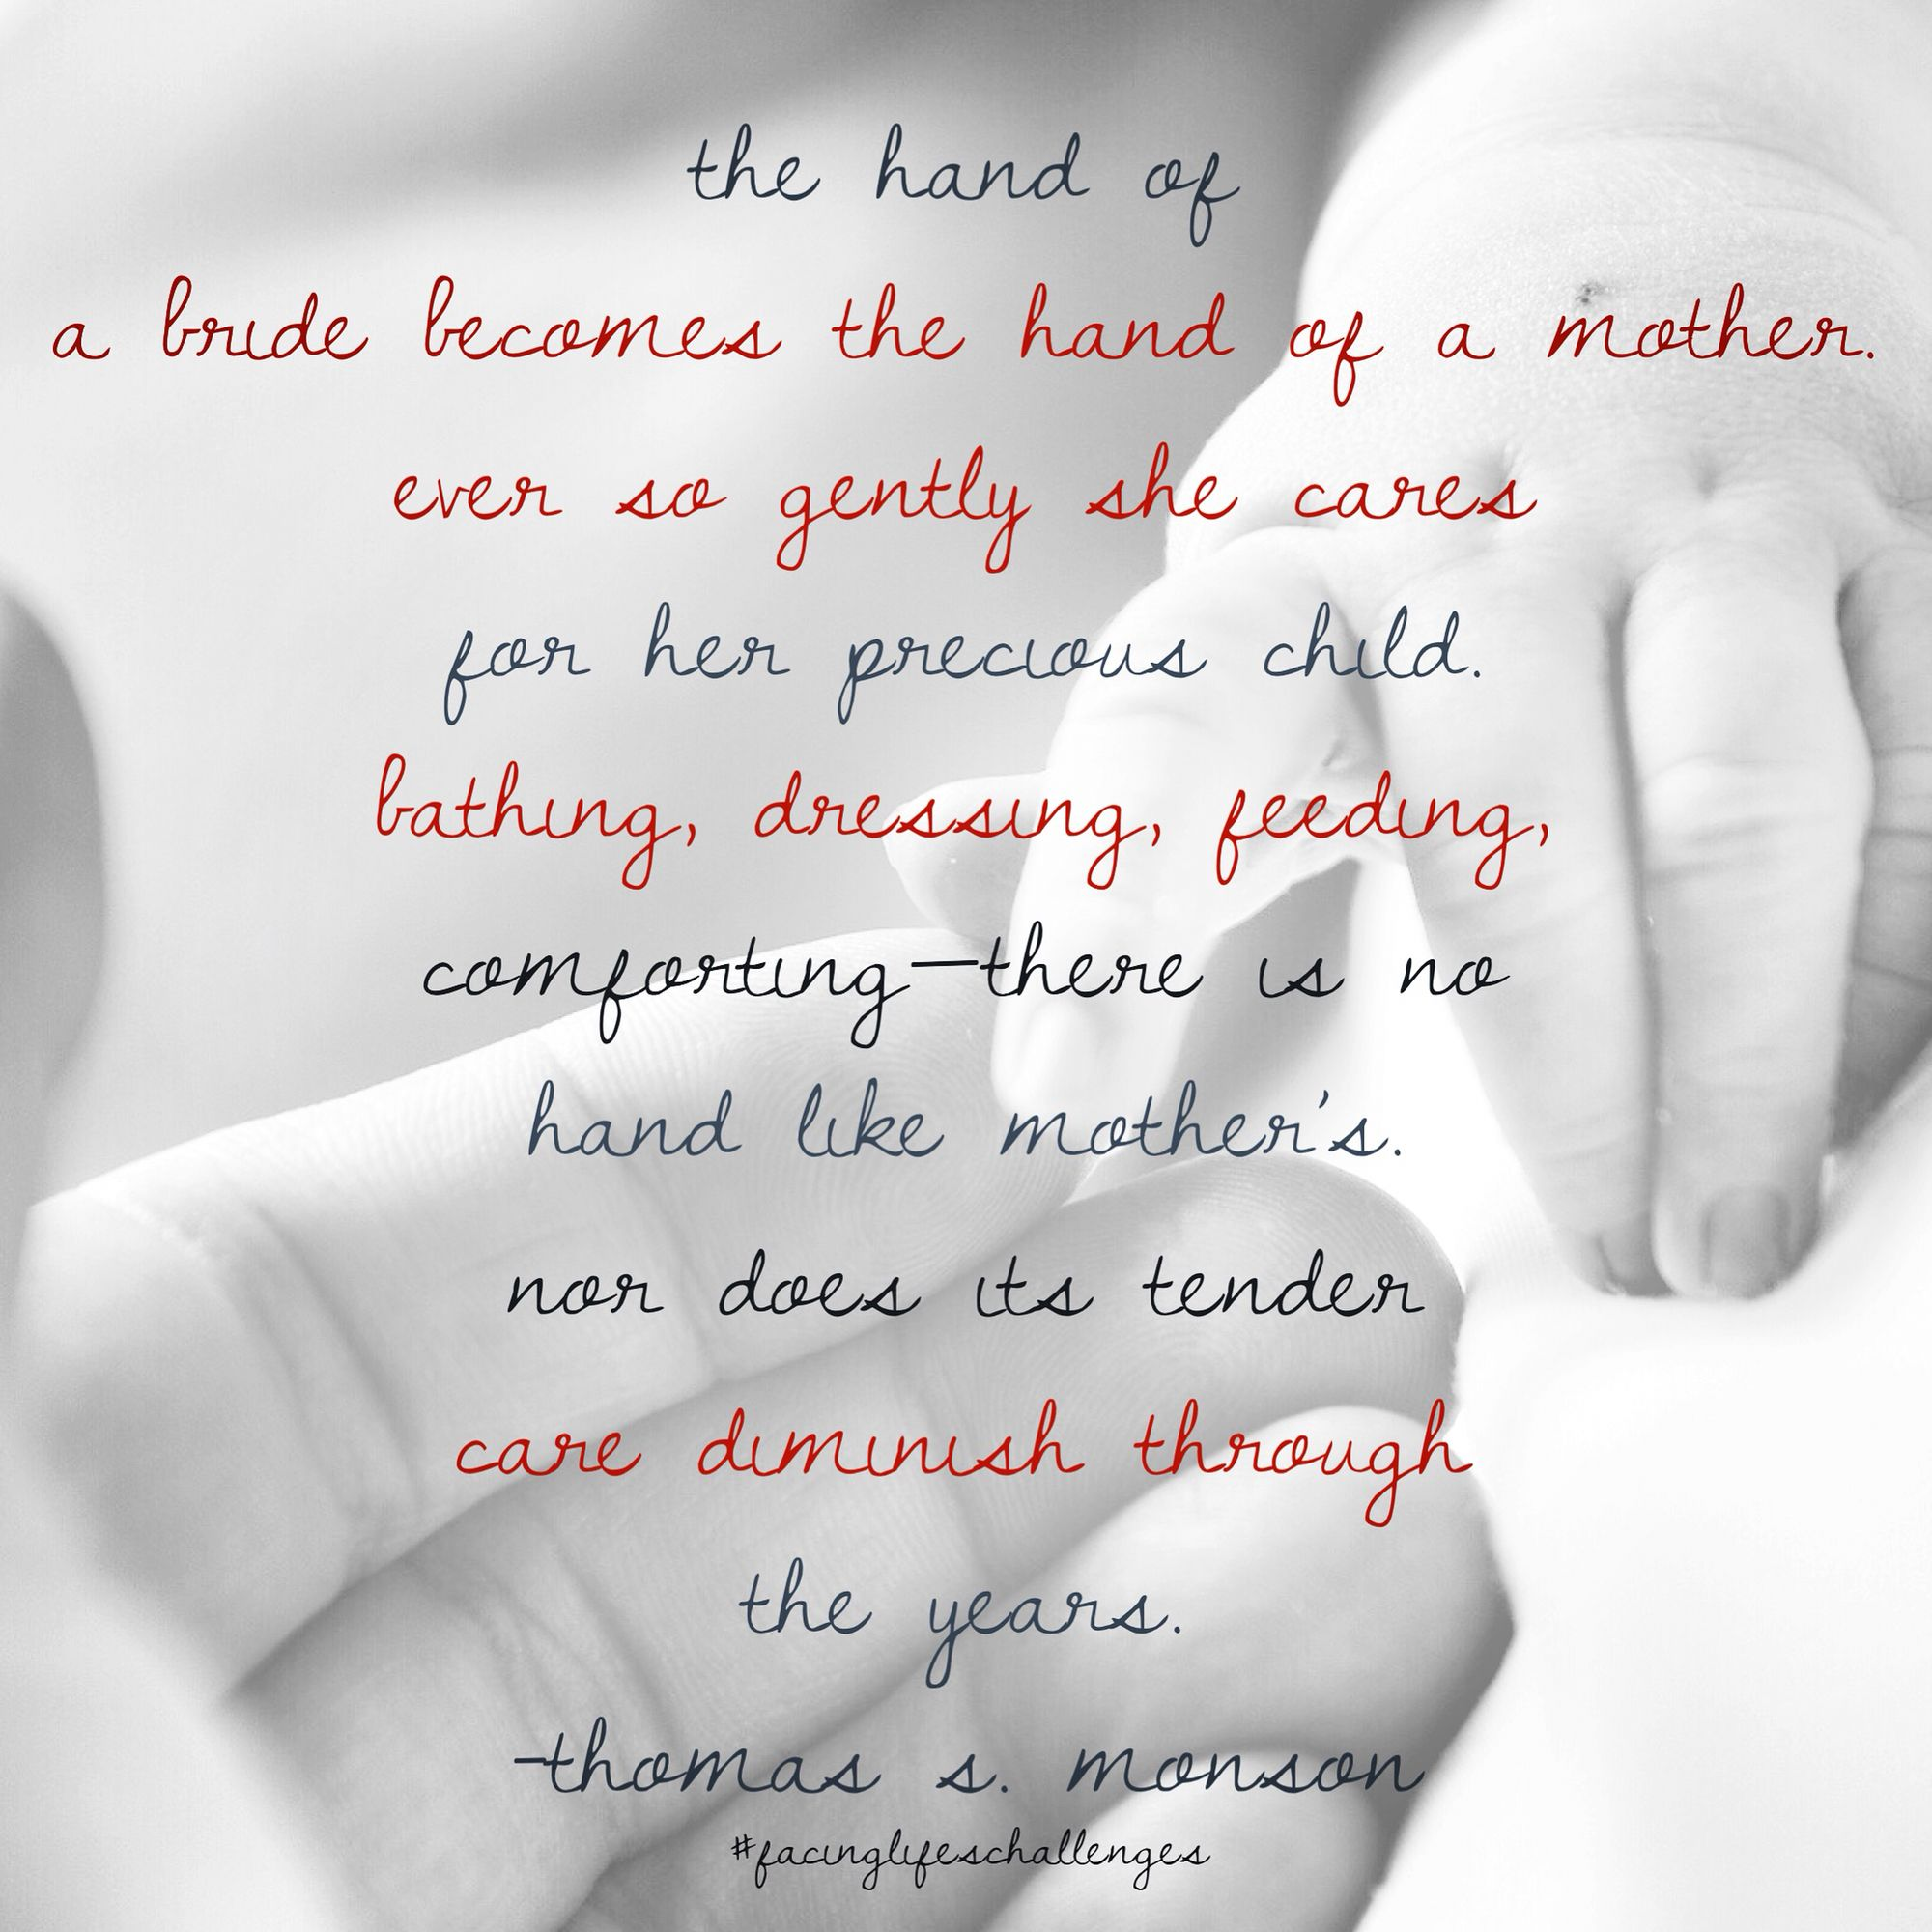 Loved are the hands of a mother. #mothersday #mothersdaygift #love #mom #mother #mothersdayweekend #mothers #beautiful #supermom #mothersday2015 #flowers #lds #mormon #christian #sharegoodness #ldswoman #presmonson